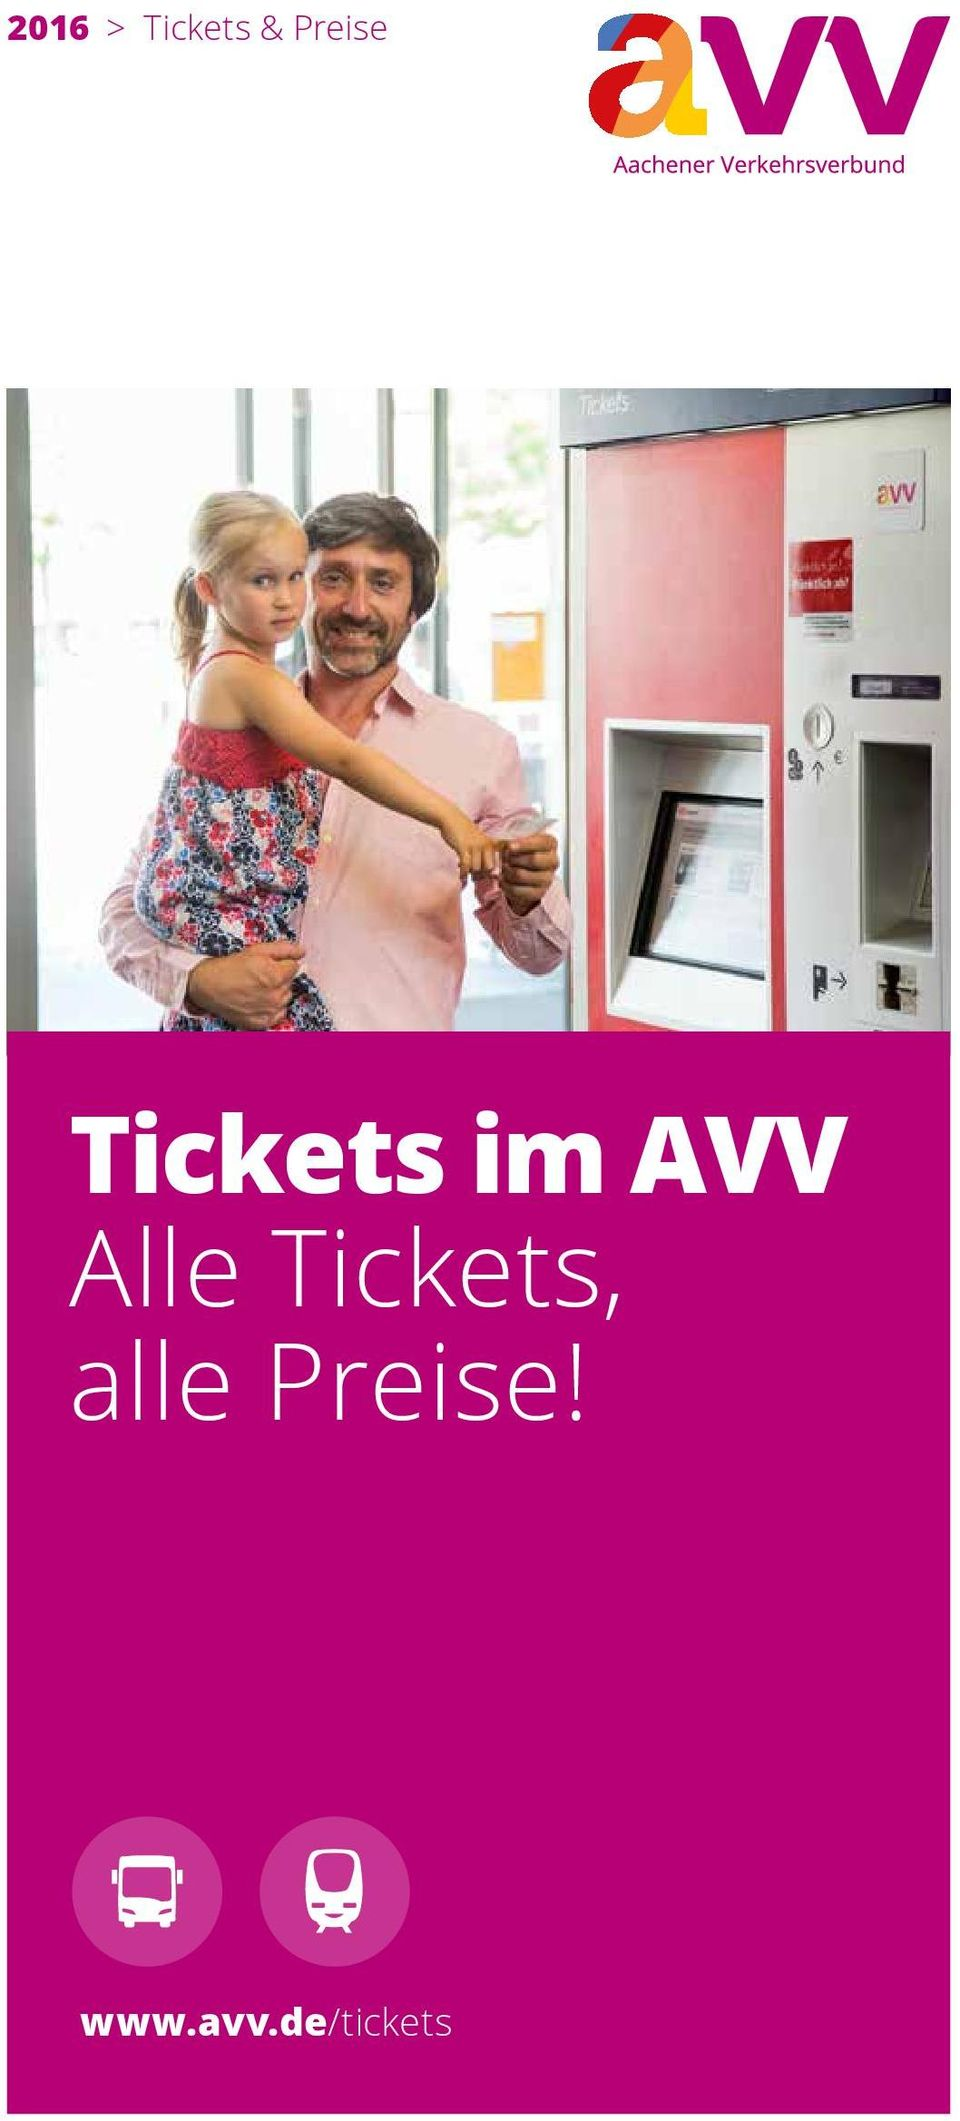 AVV Alle Tickets,